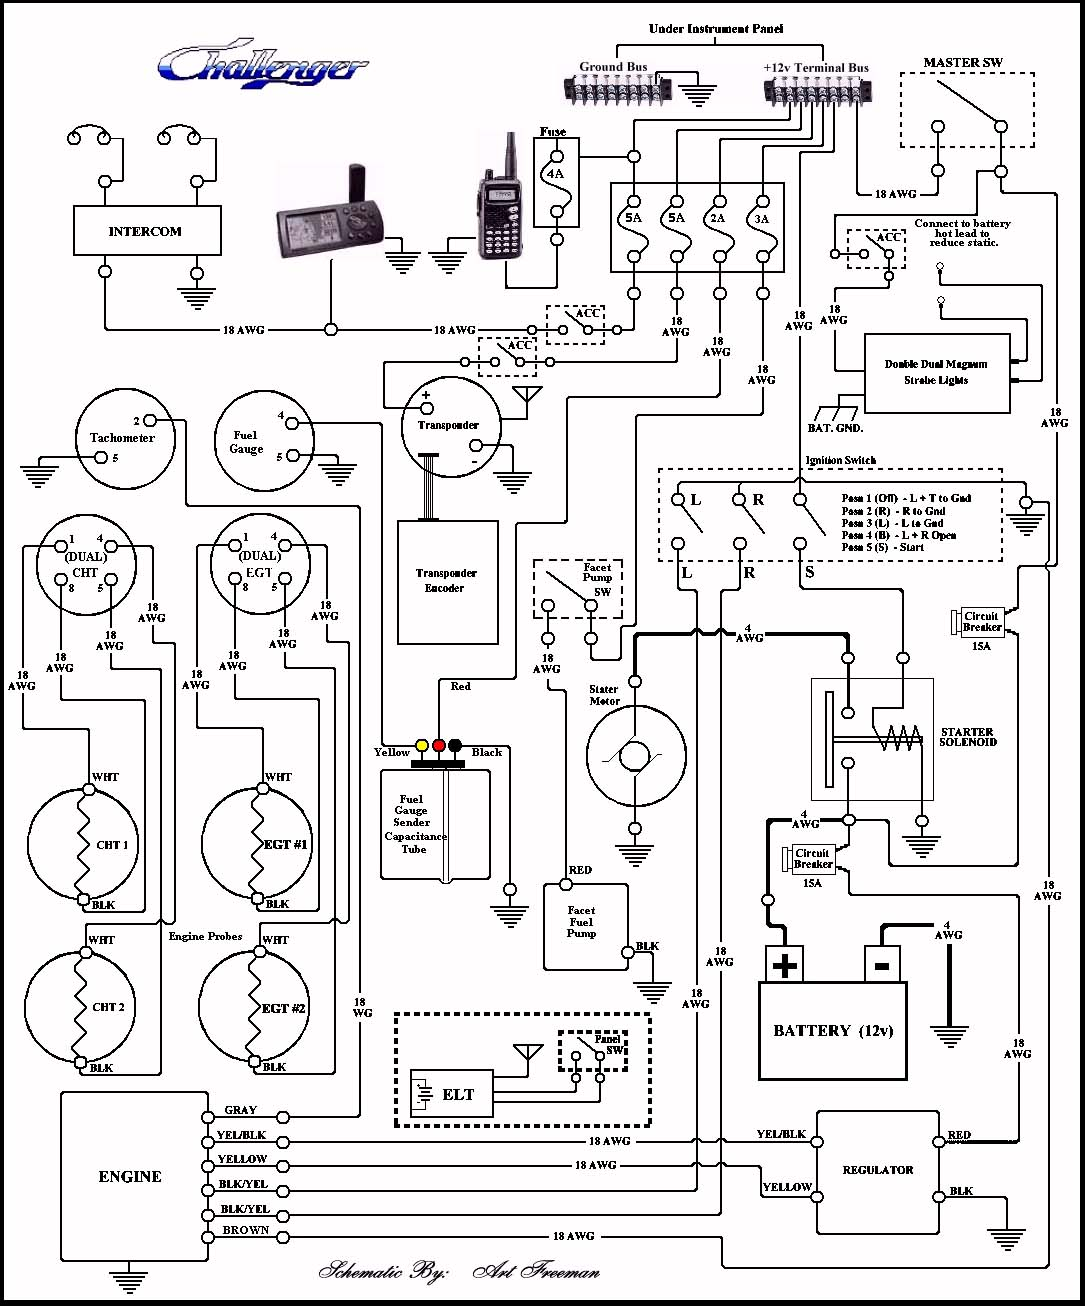 wiring diagram wire color abbreviations pdf with Downloads on 1965 Ford Truck Electrical Wiring besides Electrical Wiring Diagram Home further 329699 Toyota Mr2 Ecu Wiring Diagram moreover plete Electrical Wiring Diagram Of Suzuki Dr650 as well Downloads.